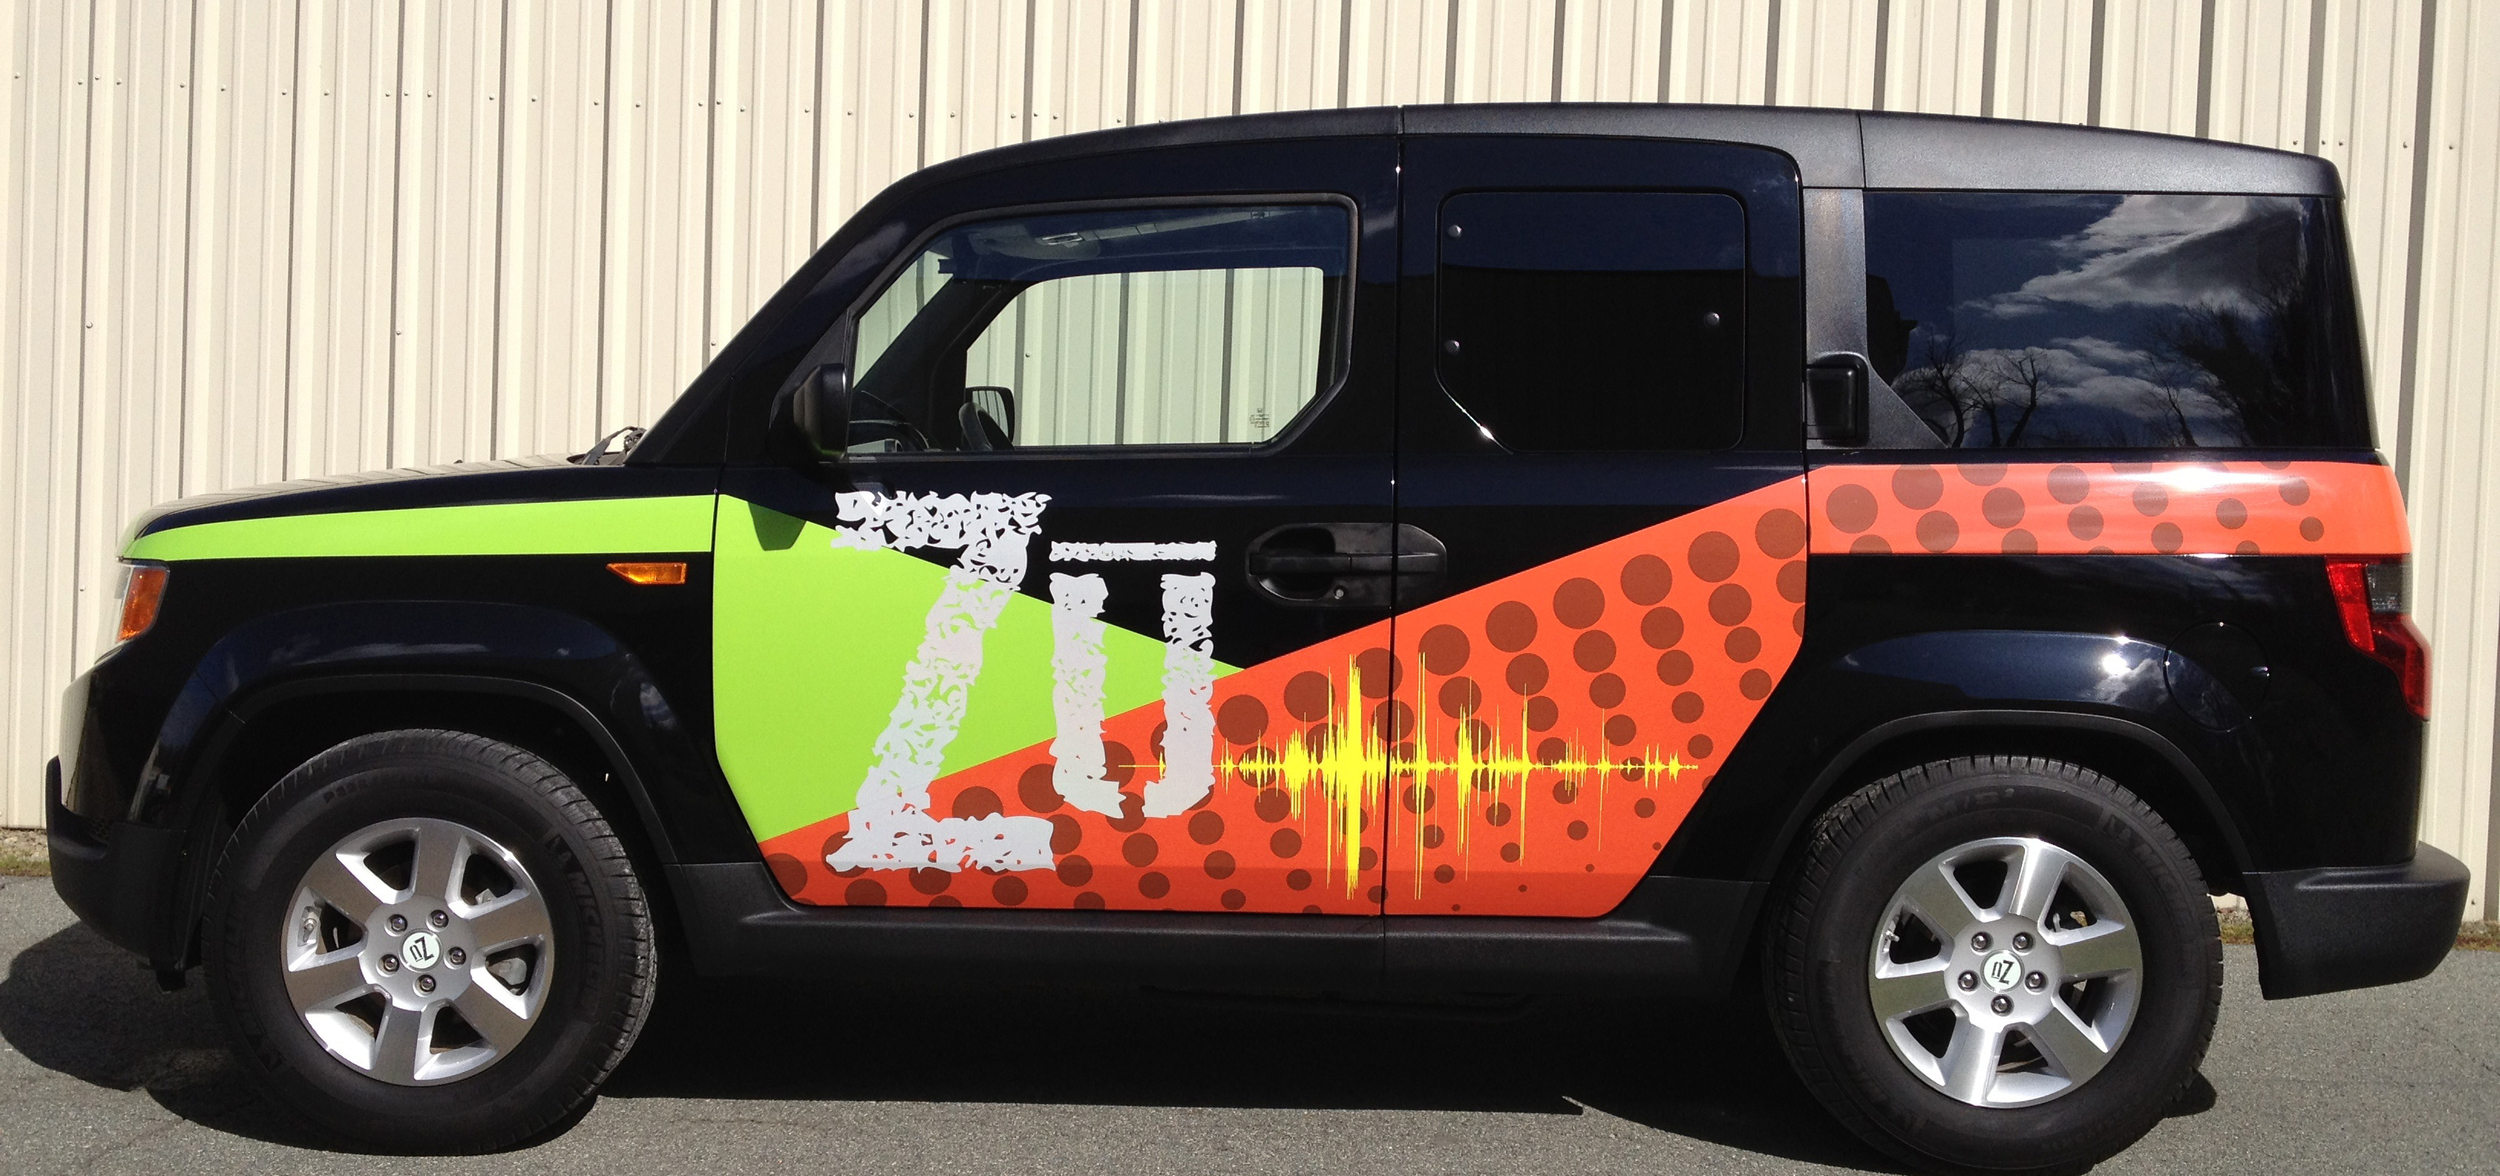 DECALS AND VINYL STICKERS In need of a promotional vehicle for your business? We take cars and boats to the next level with our graphics services. We also apply full custom wraps for businesses and vinyl stickers for heavy equipment such as tractors.